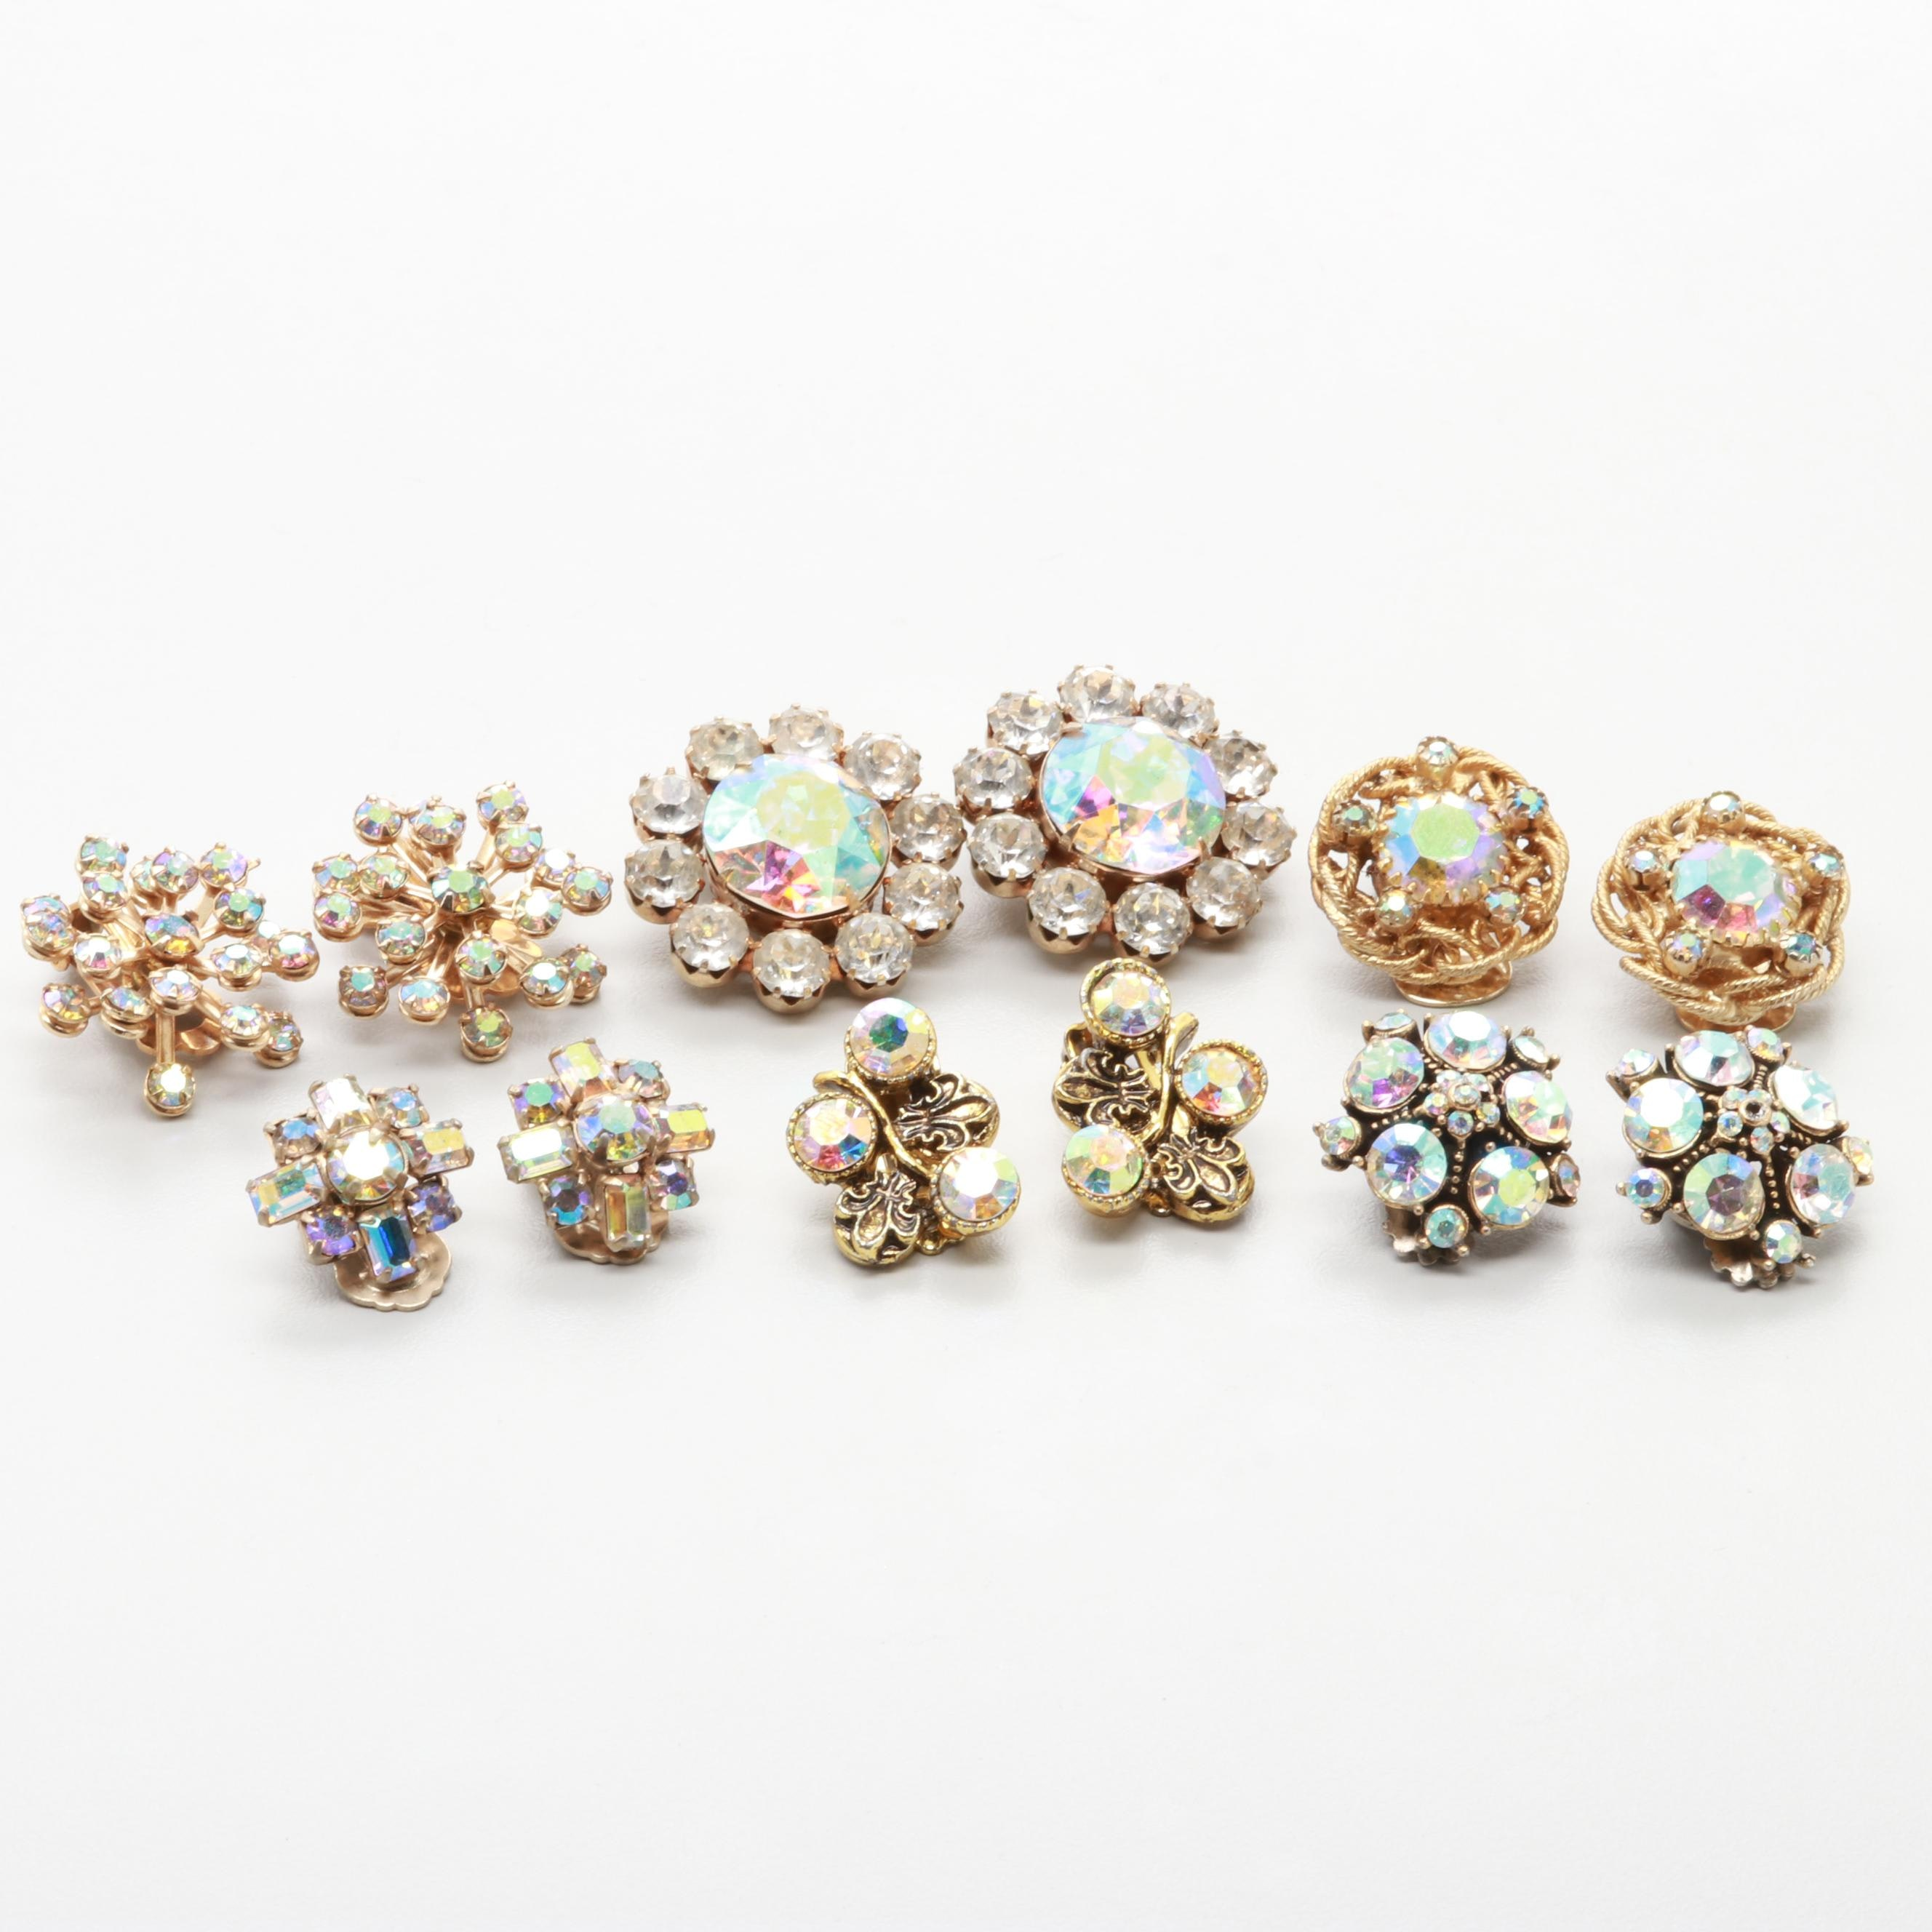 Collection of 1960s Iridescent Rhinestone Earrings Including Weiss, Kramer